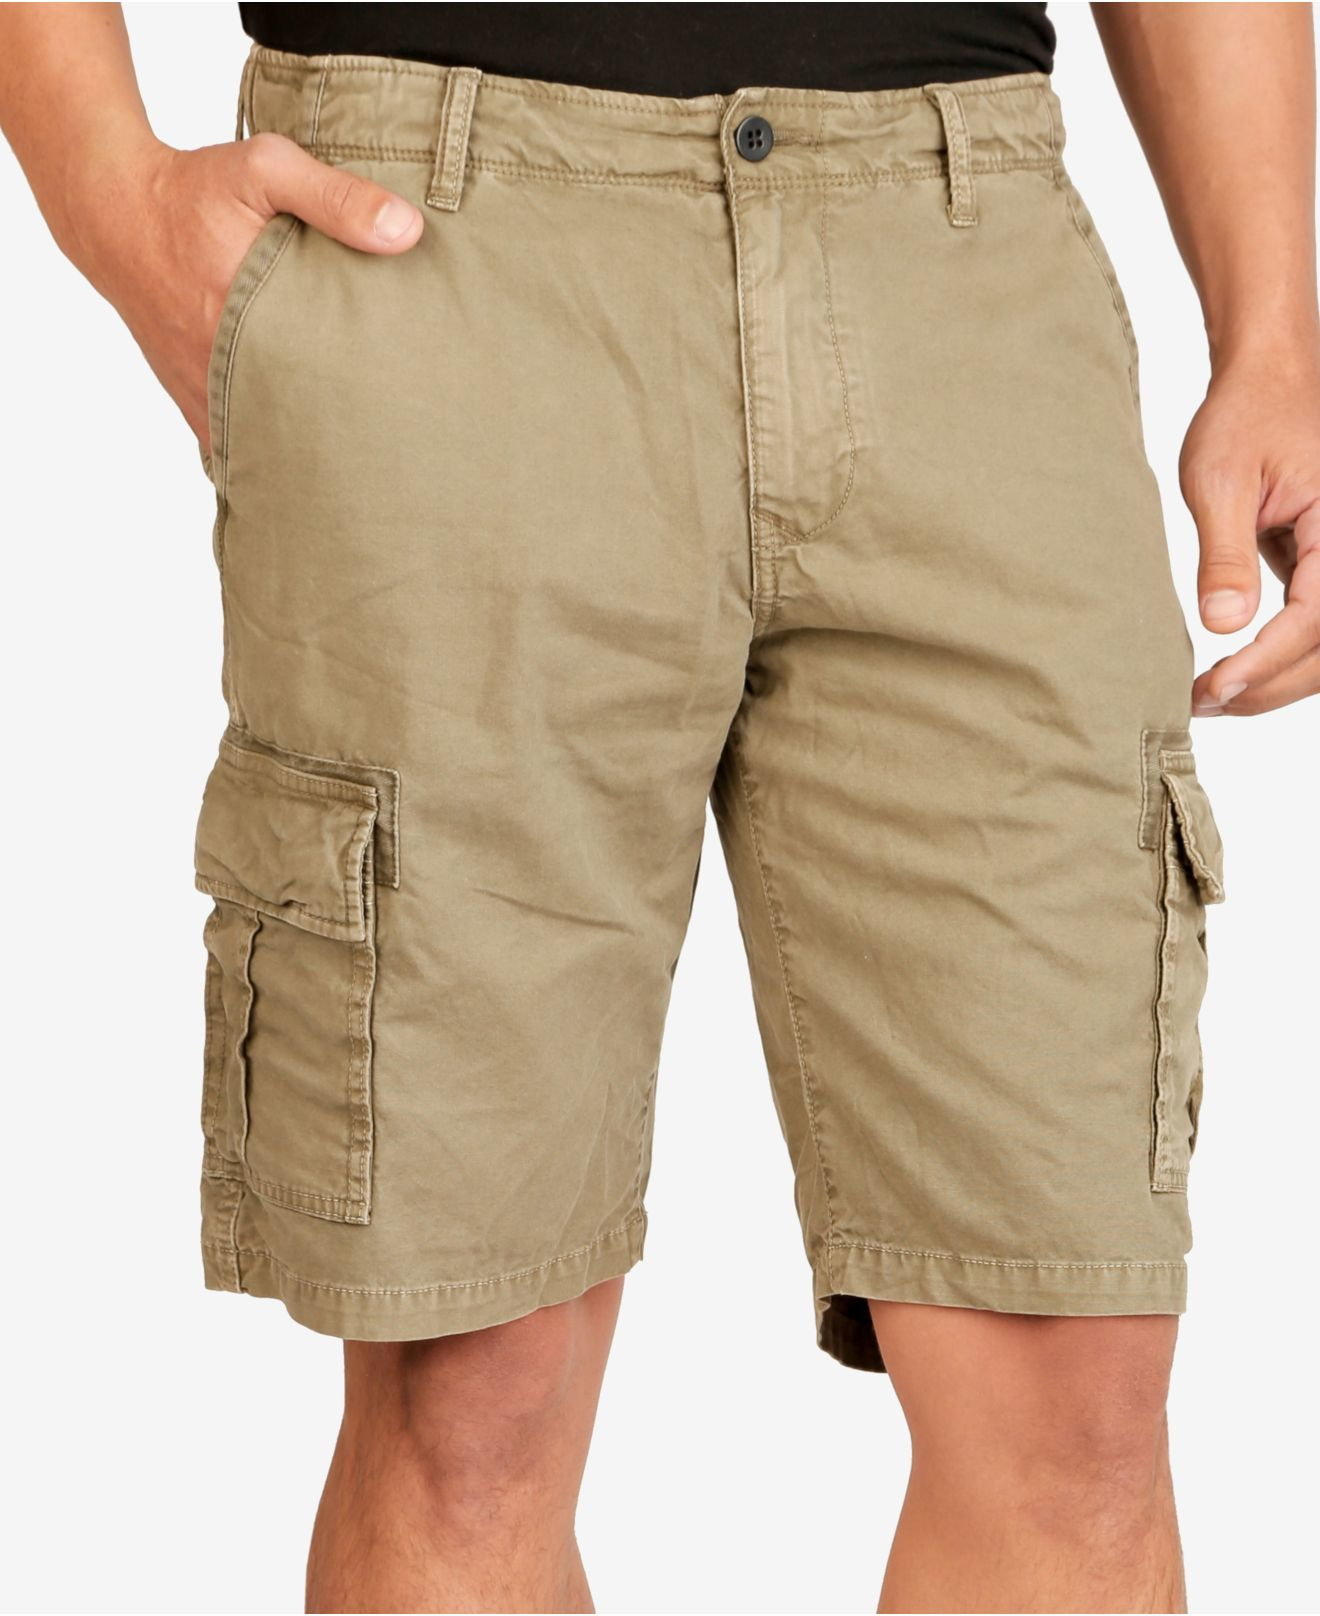 Lyst - Lucky Brand Men's Cargo Shorts in Green for Men